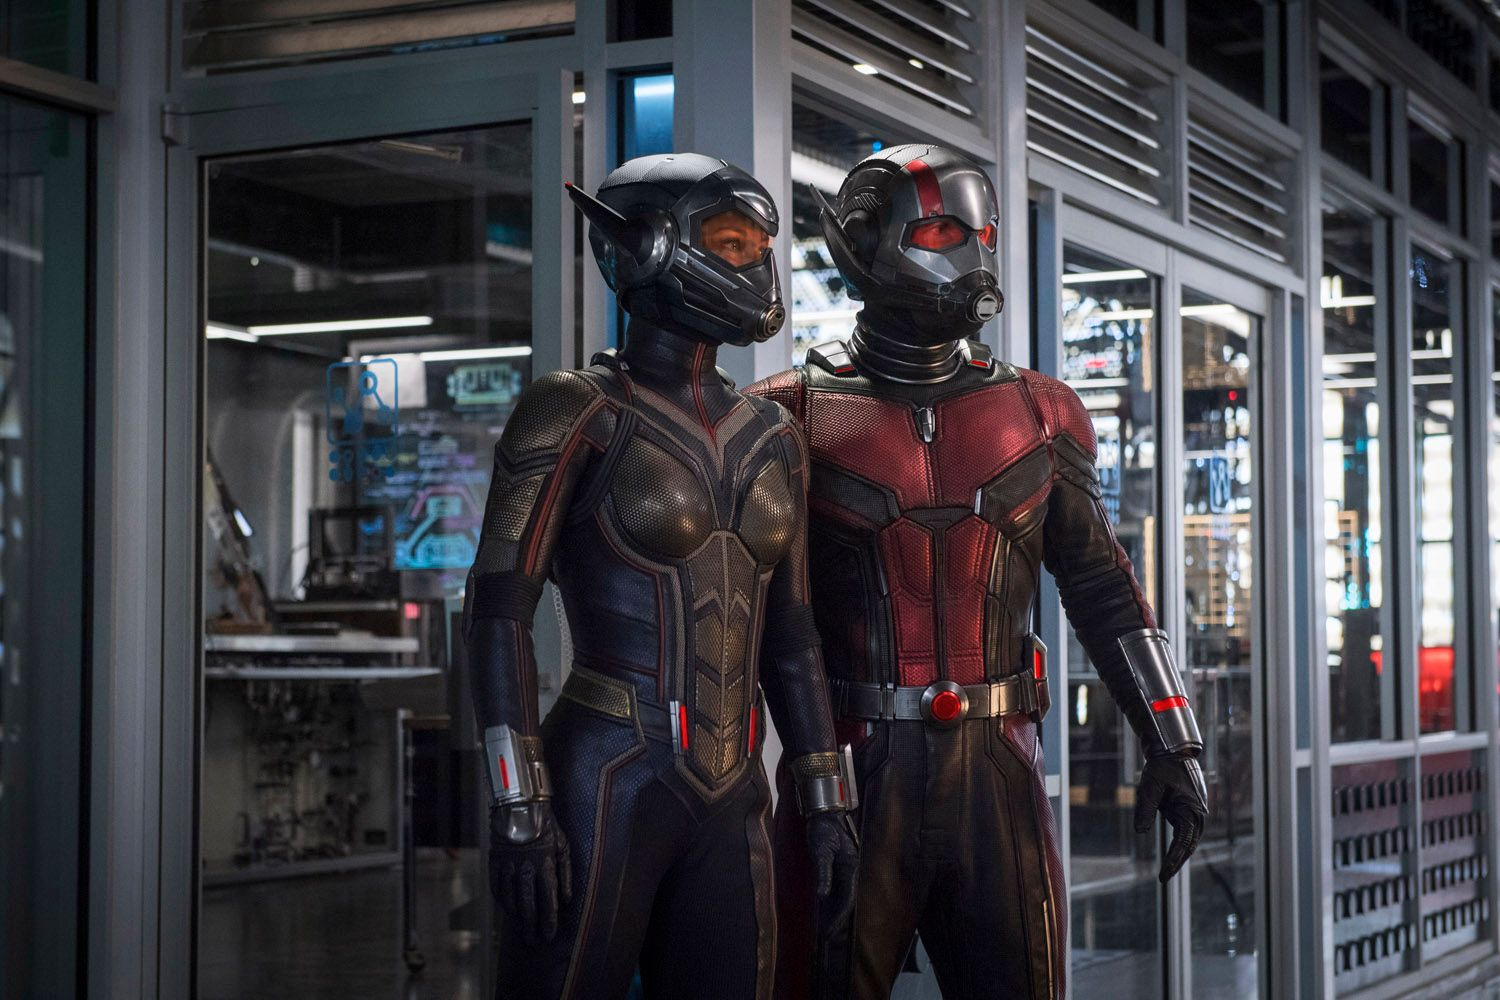 antman and the wasp trailer reveals the marvel sequel